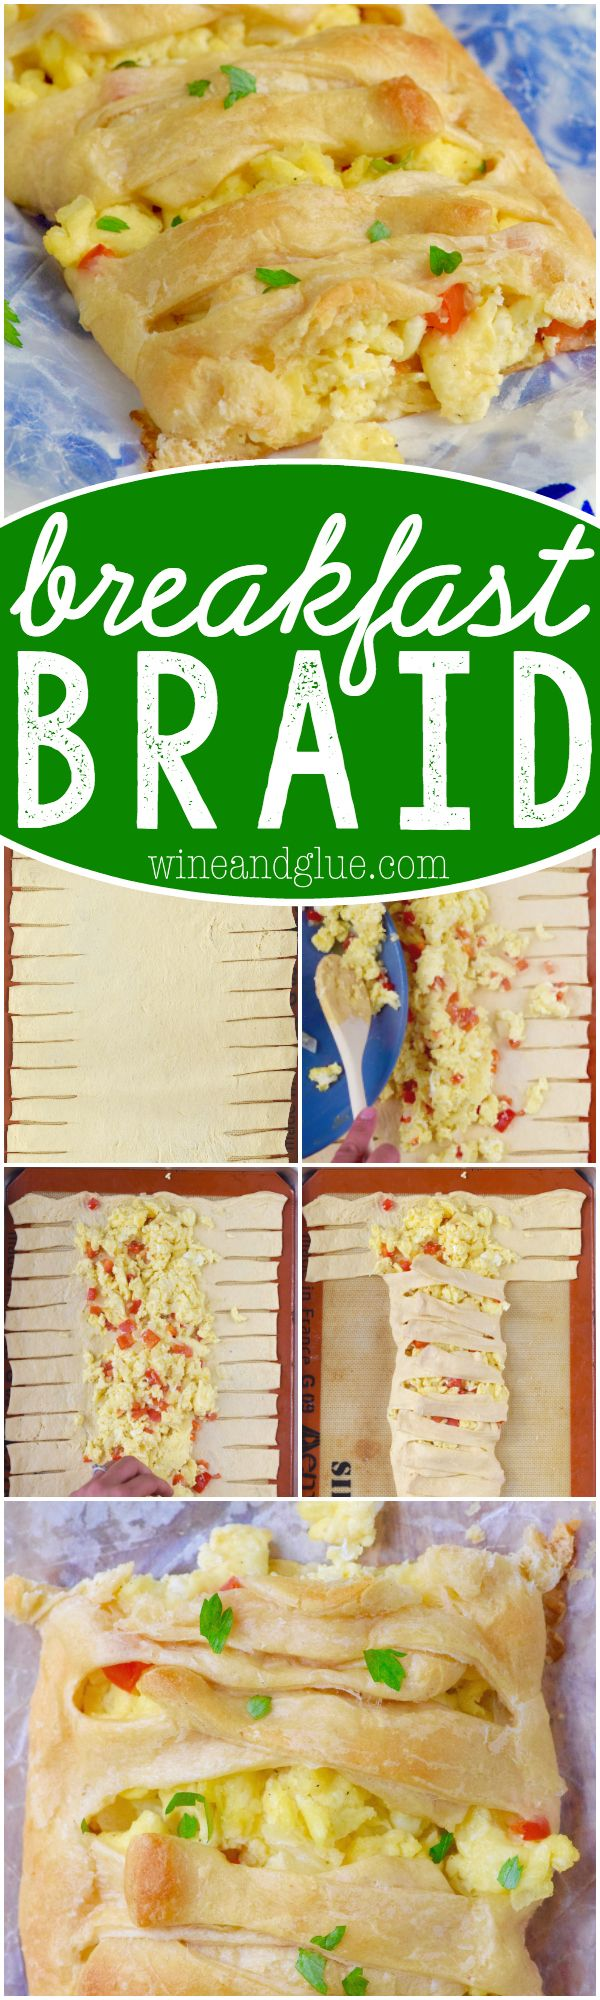 This Breakfast Braid looks super fancy, but it's deceptively easy and delicious!: